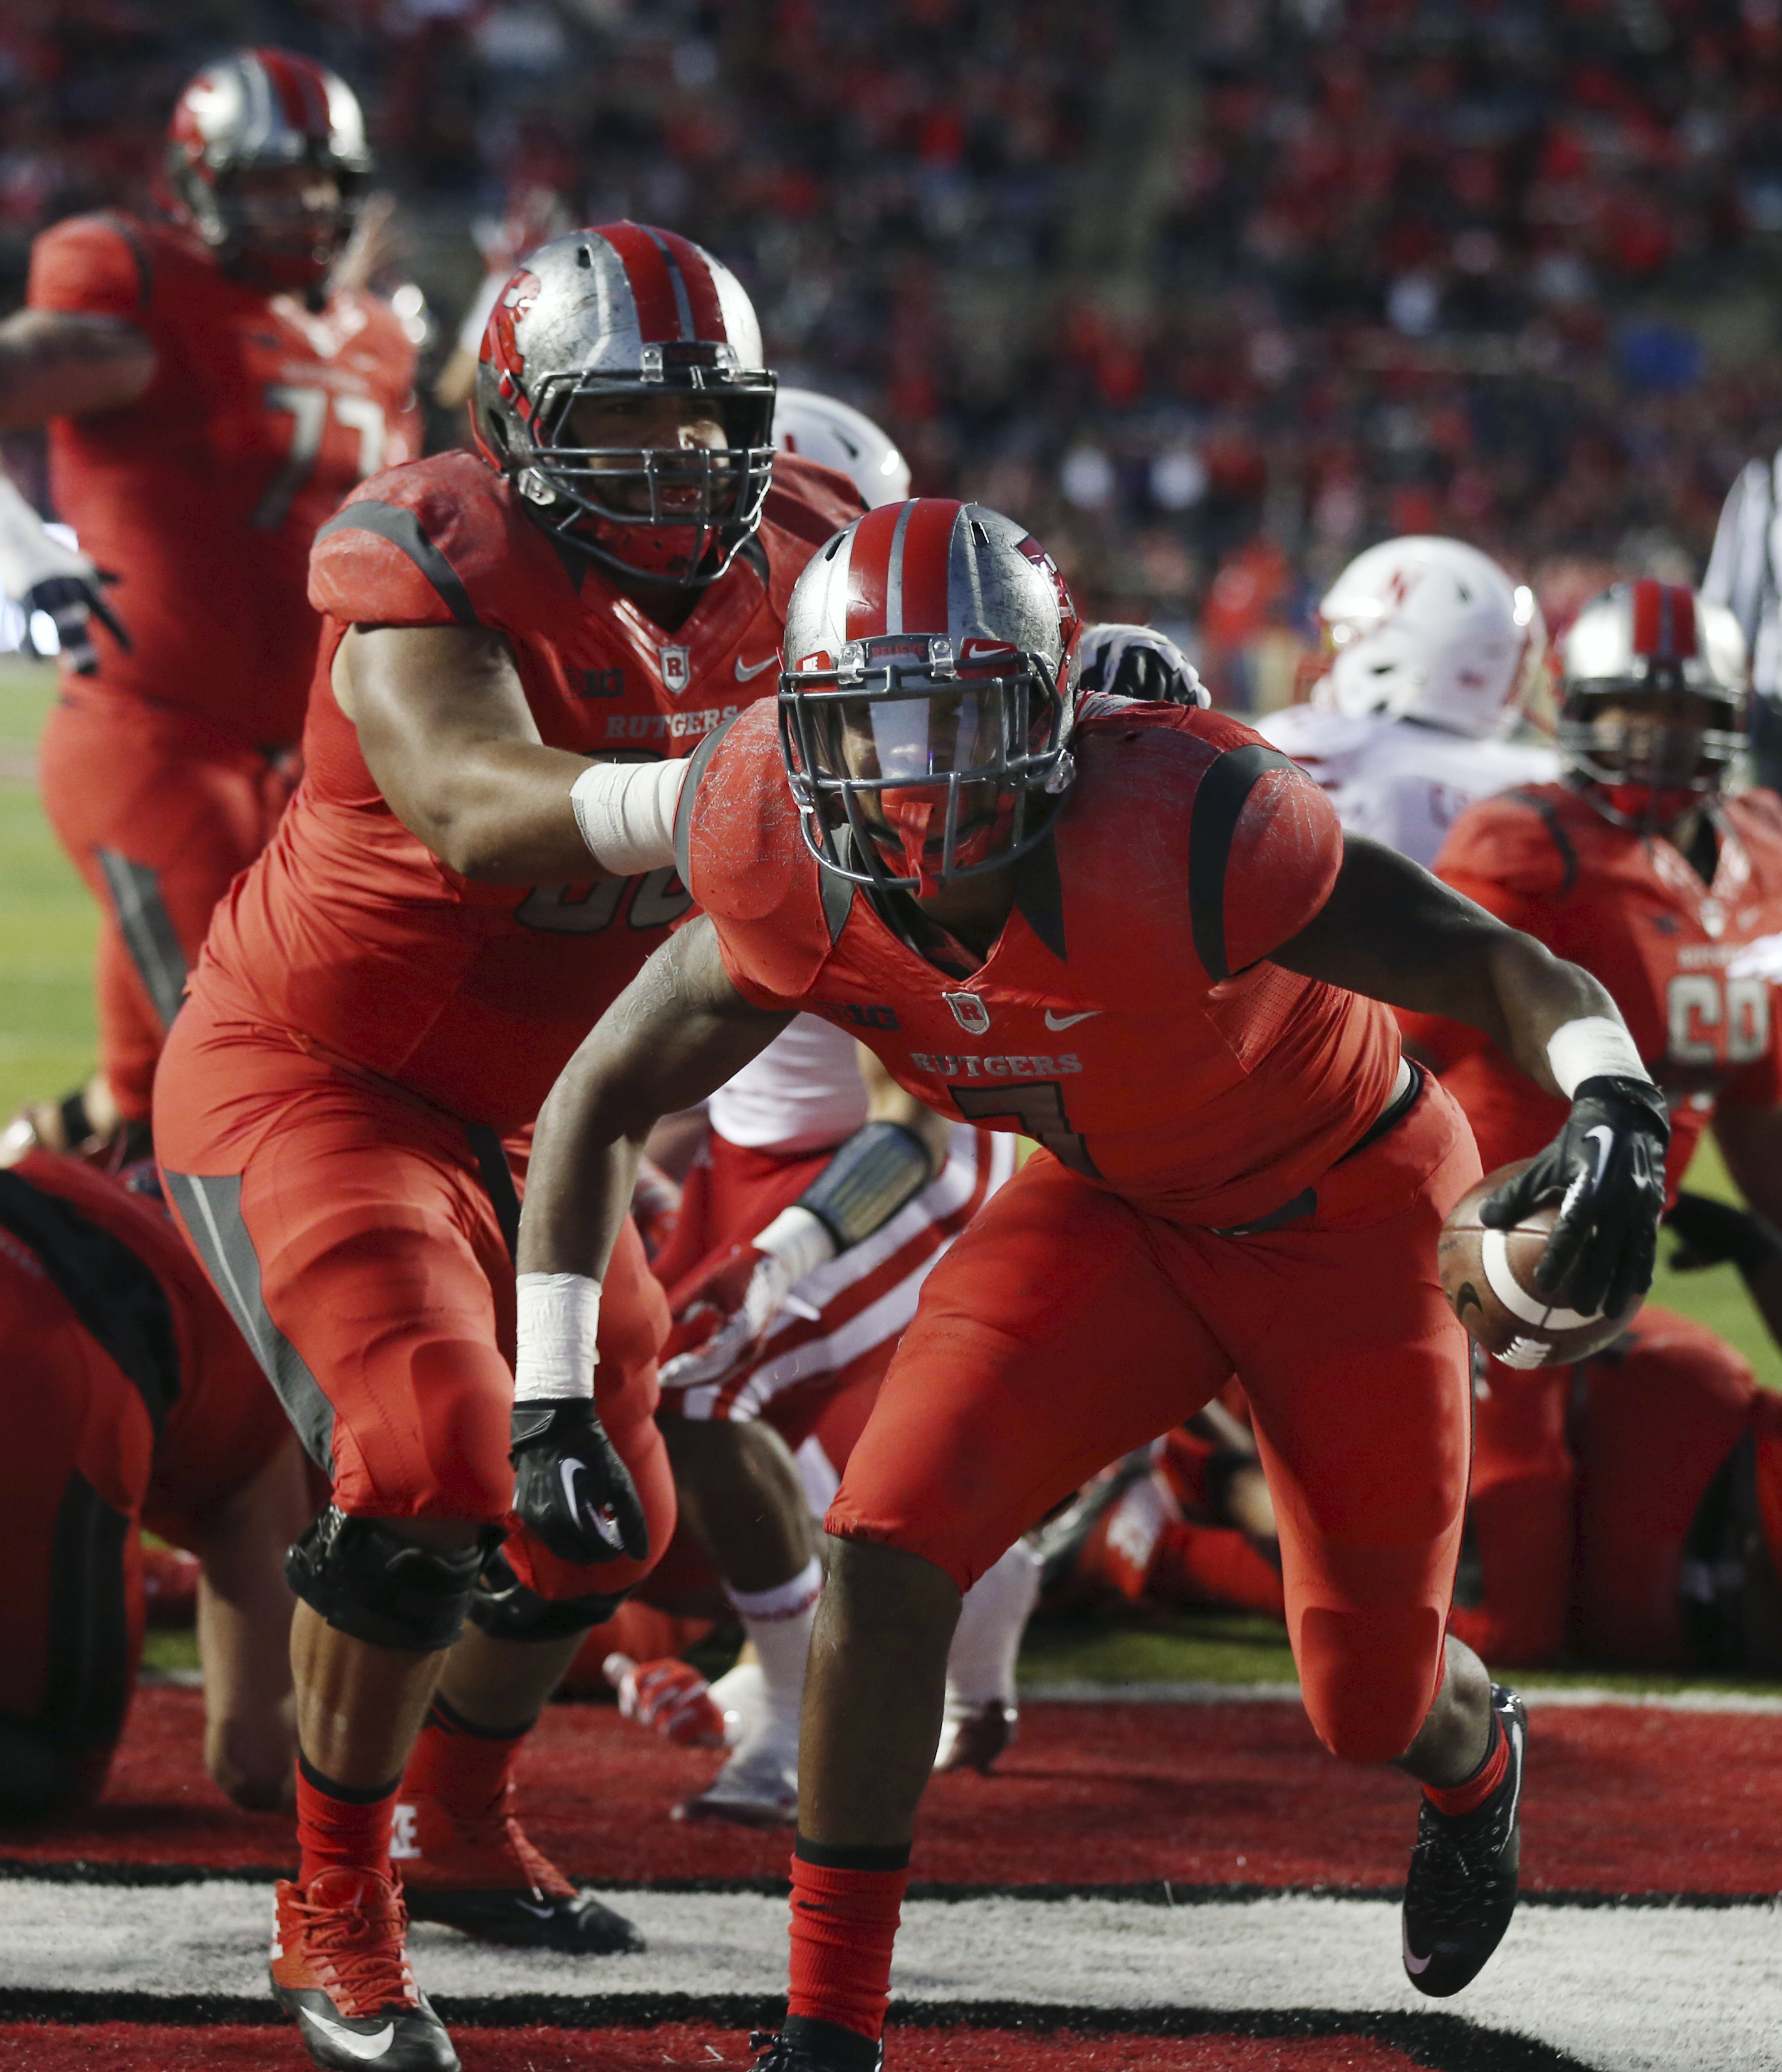 Rutgers running back Robert Martin (7) celebrates his touchdown during the first half of an NCAA college football game against Nebraska, Saturday, Nov. 14, 2015, in Piscataway, N.J. (AP Photo/Mel Evans)